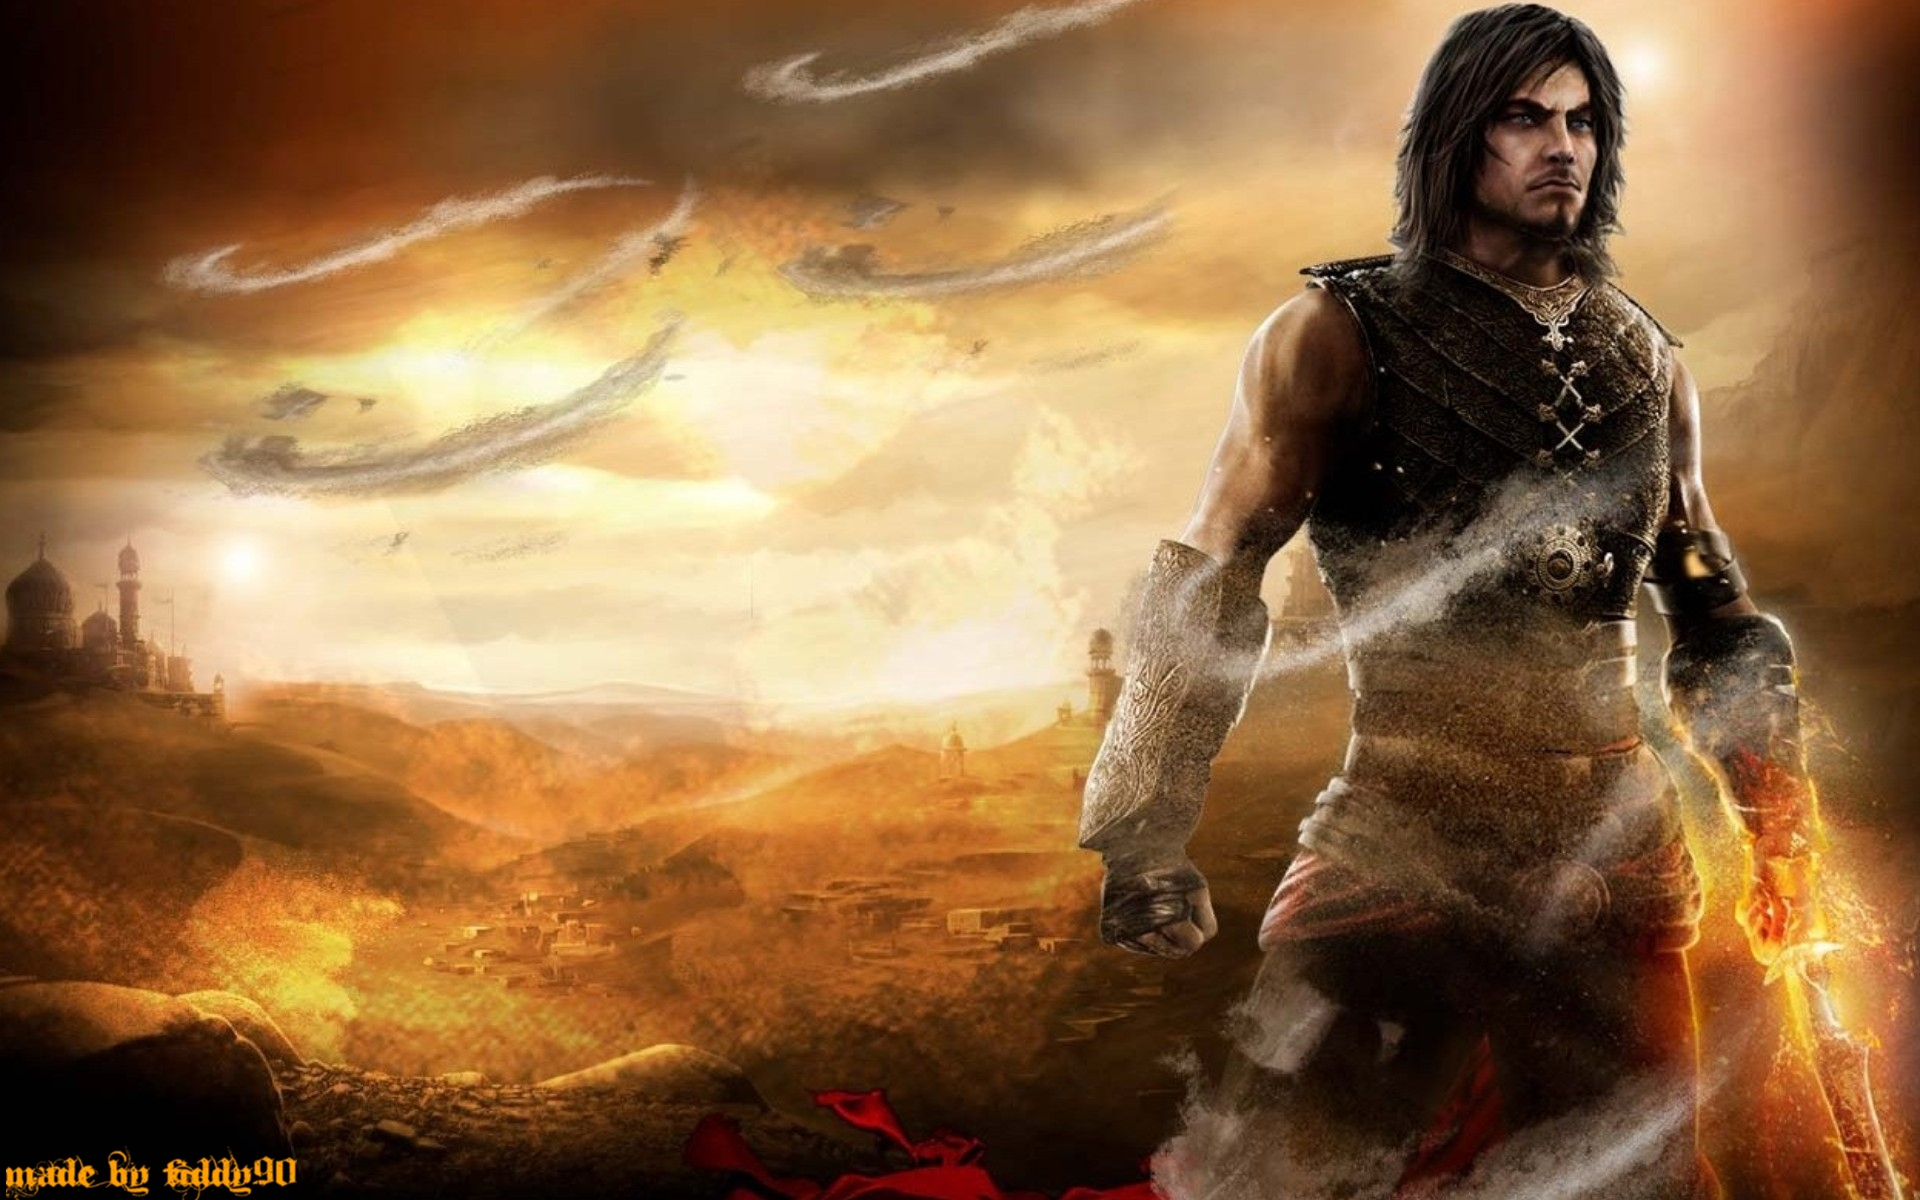 Prince Of Persia Game Wallpaper (43 Wallpapers)